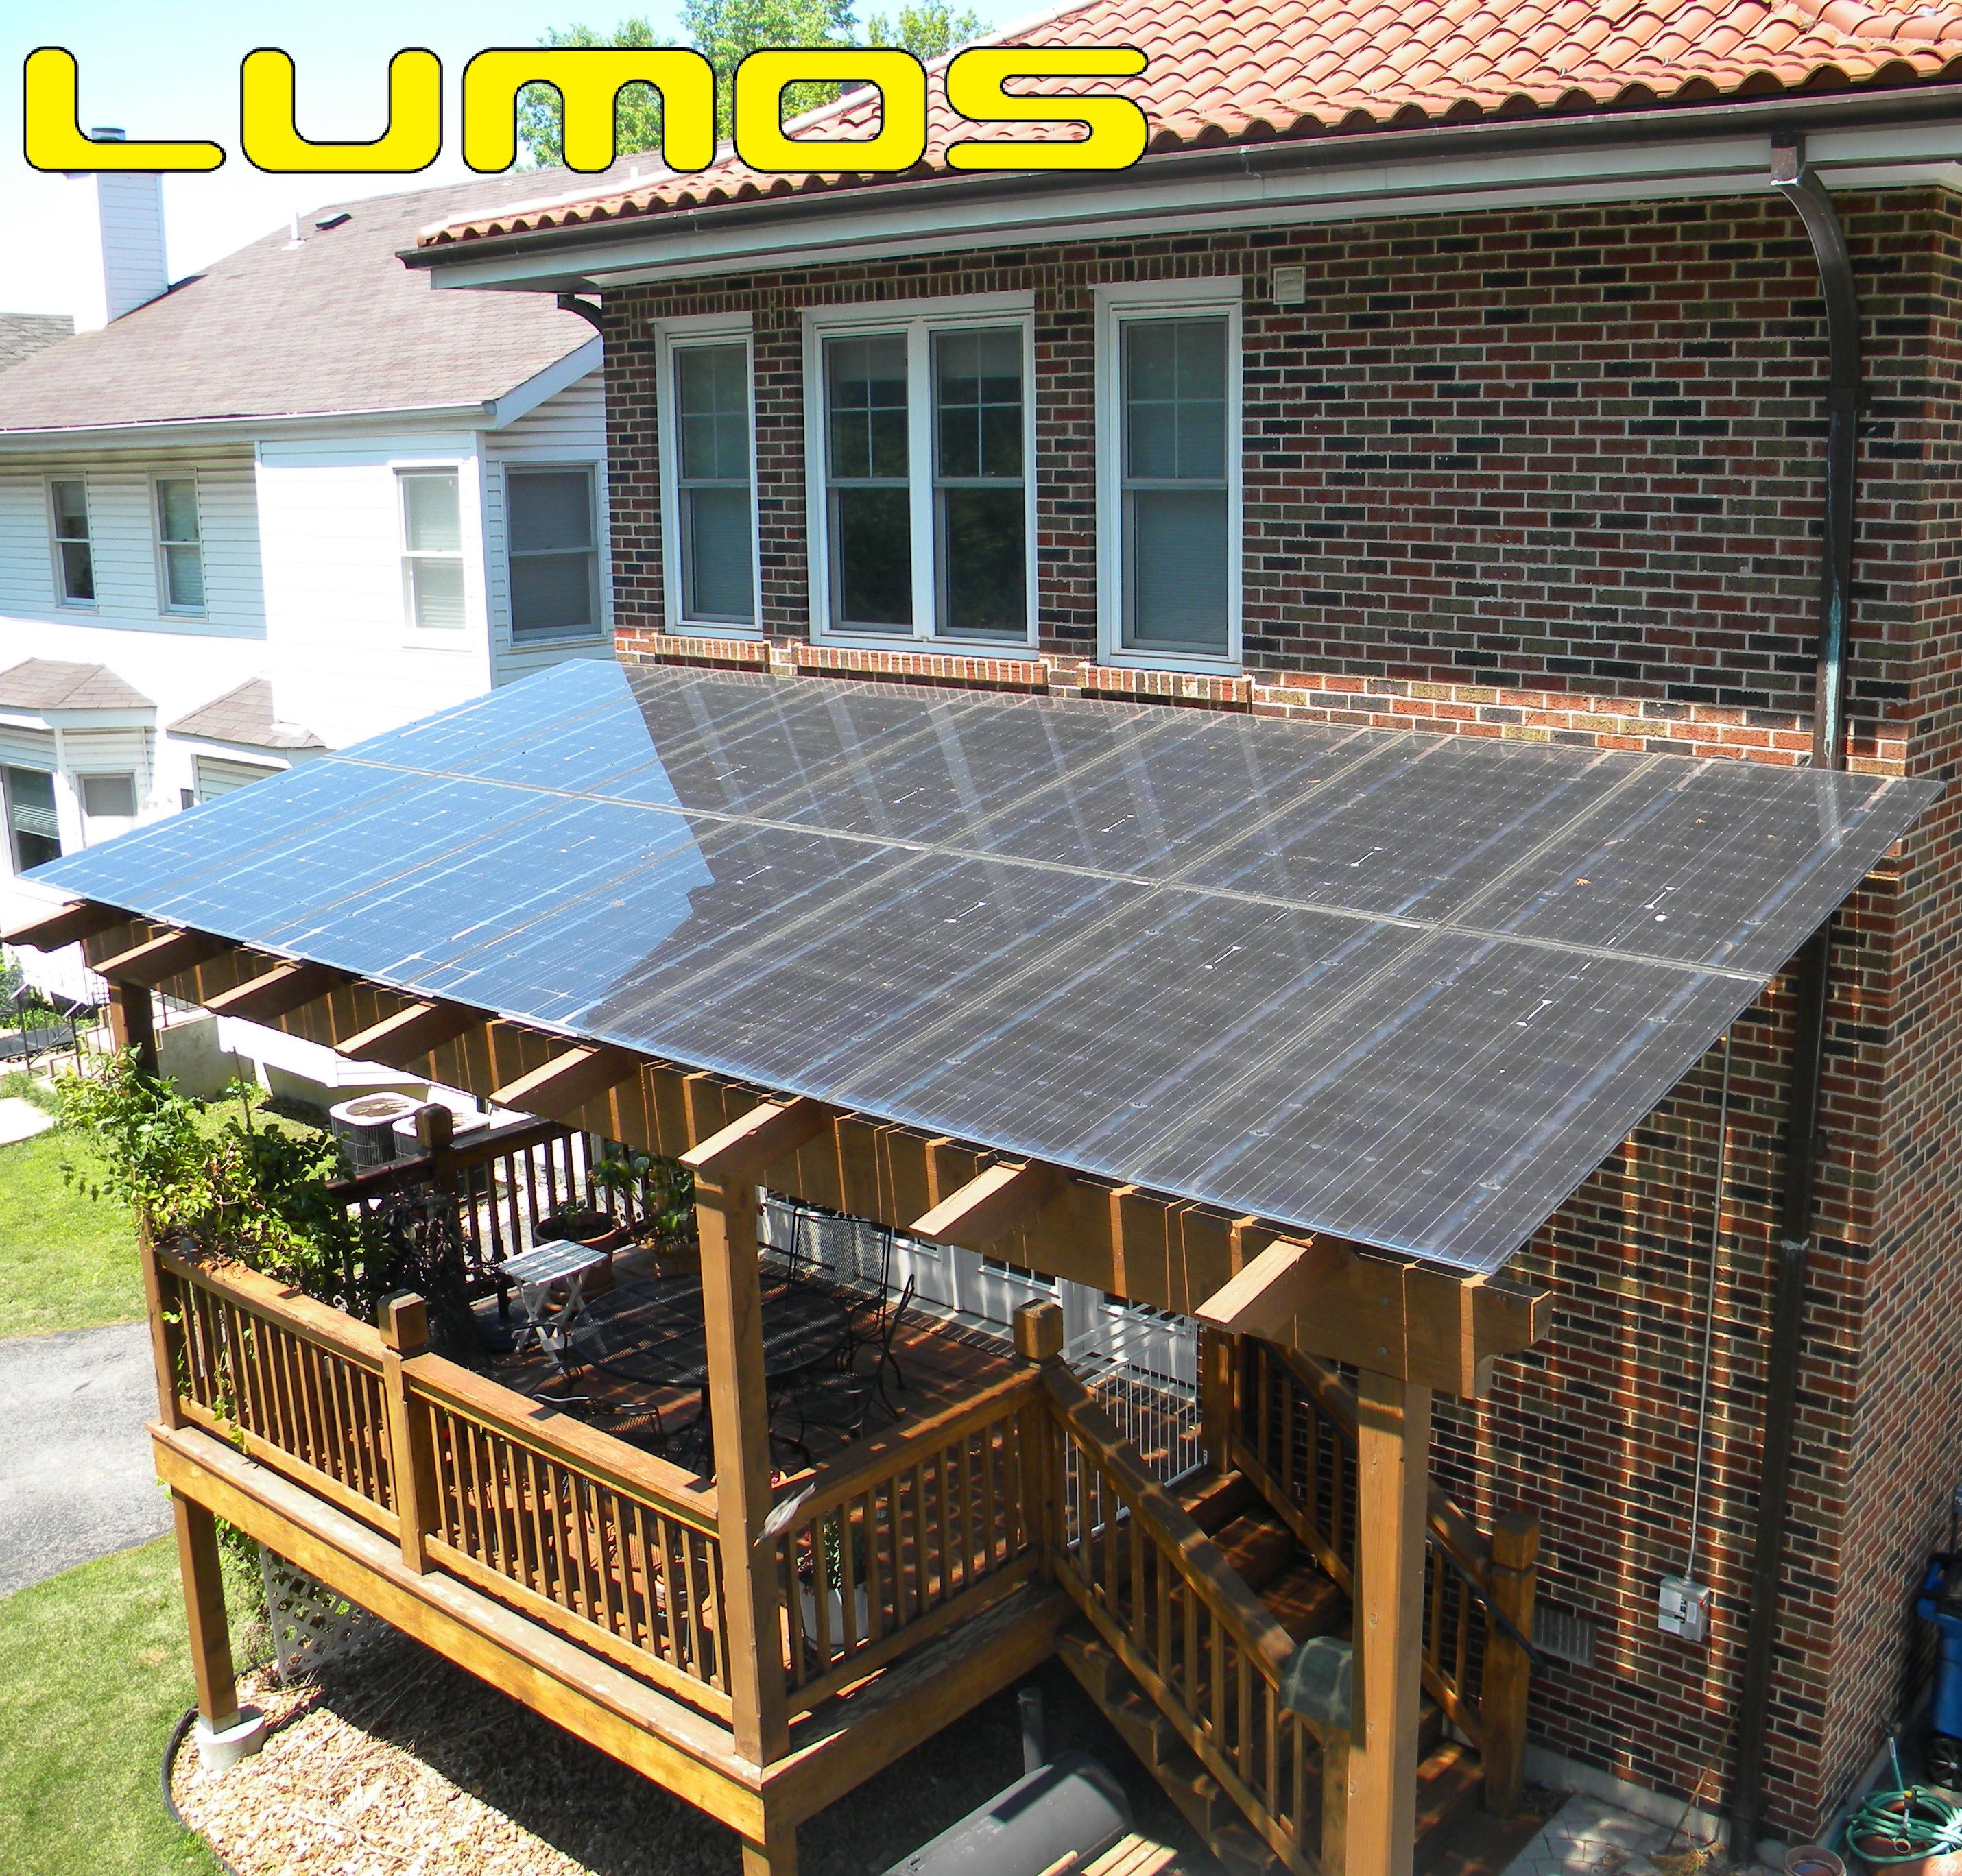 Certified Solar Installation Of Lumos LSX As A Canopy